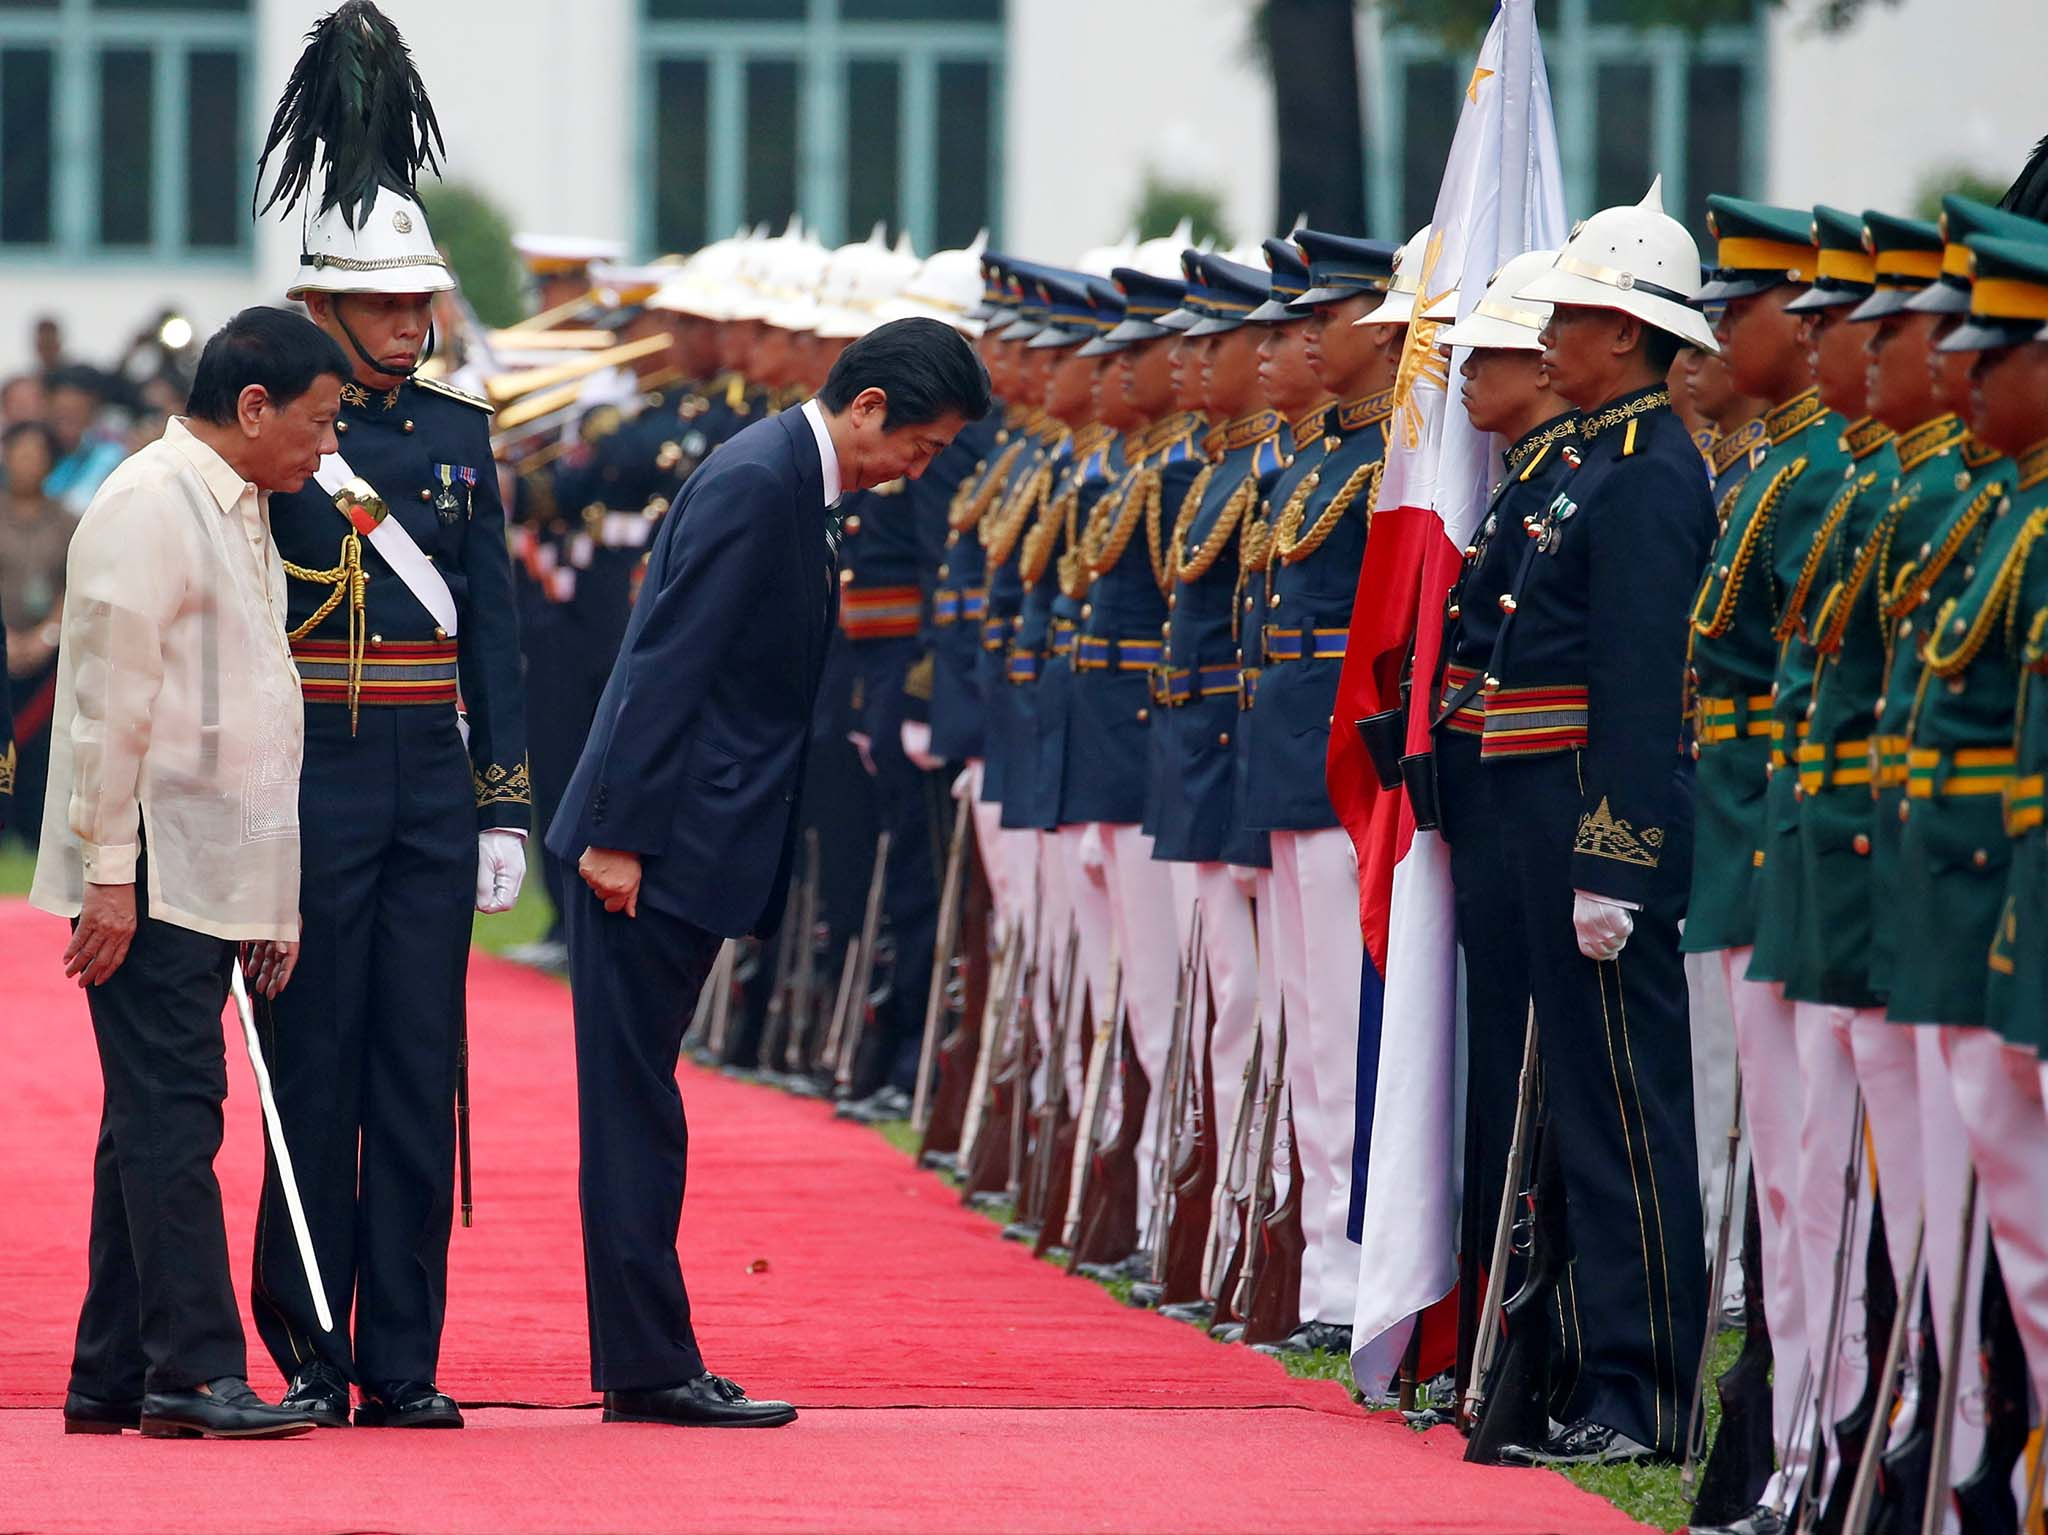 Japanese Prime Minister Shinzo Abe bows his head before the Philippine flag during a welcome ceremony at the presidential palace in Manila, Philippines